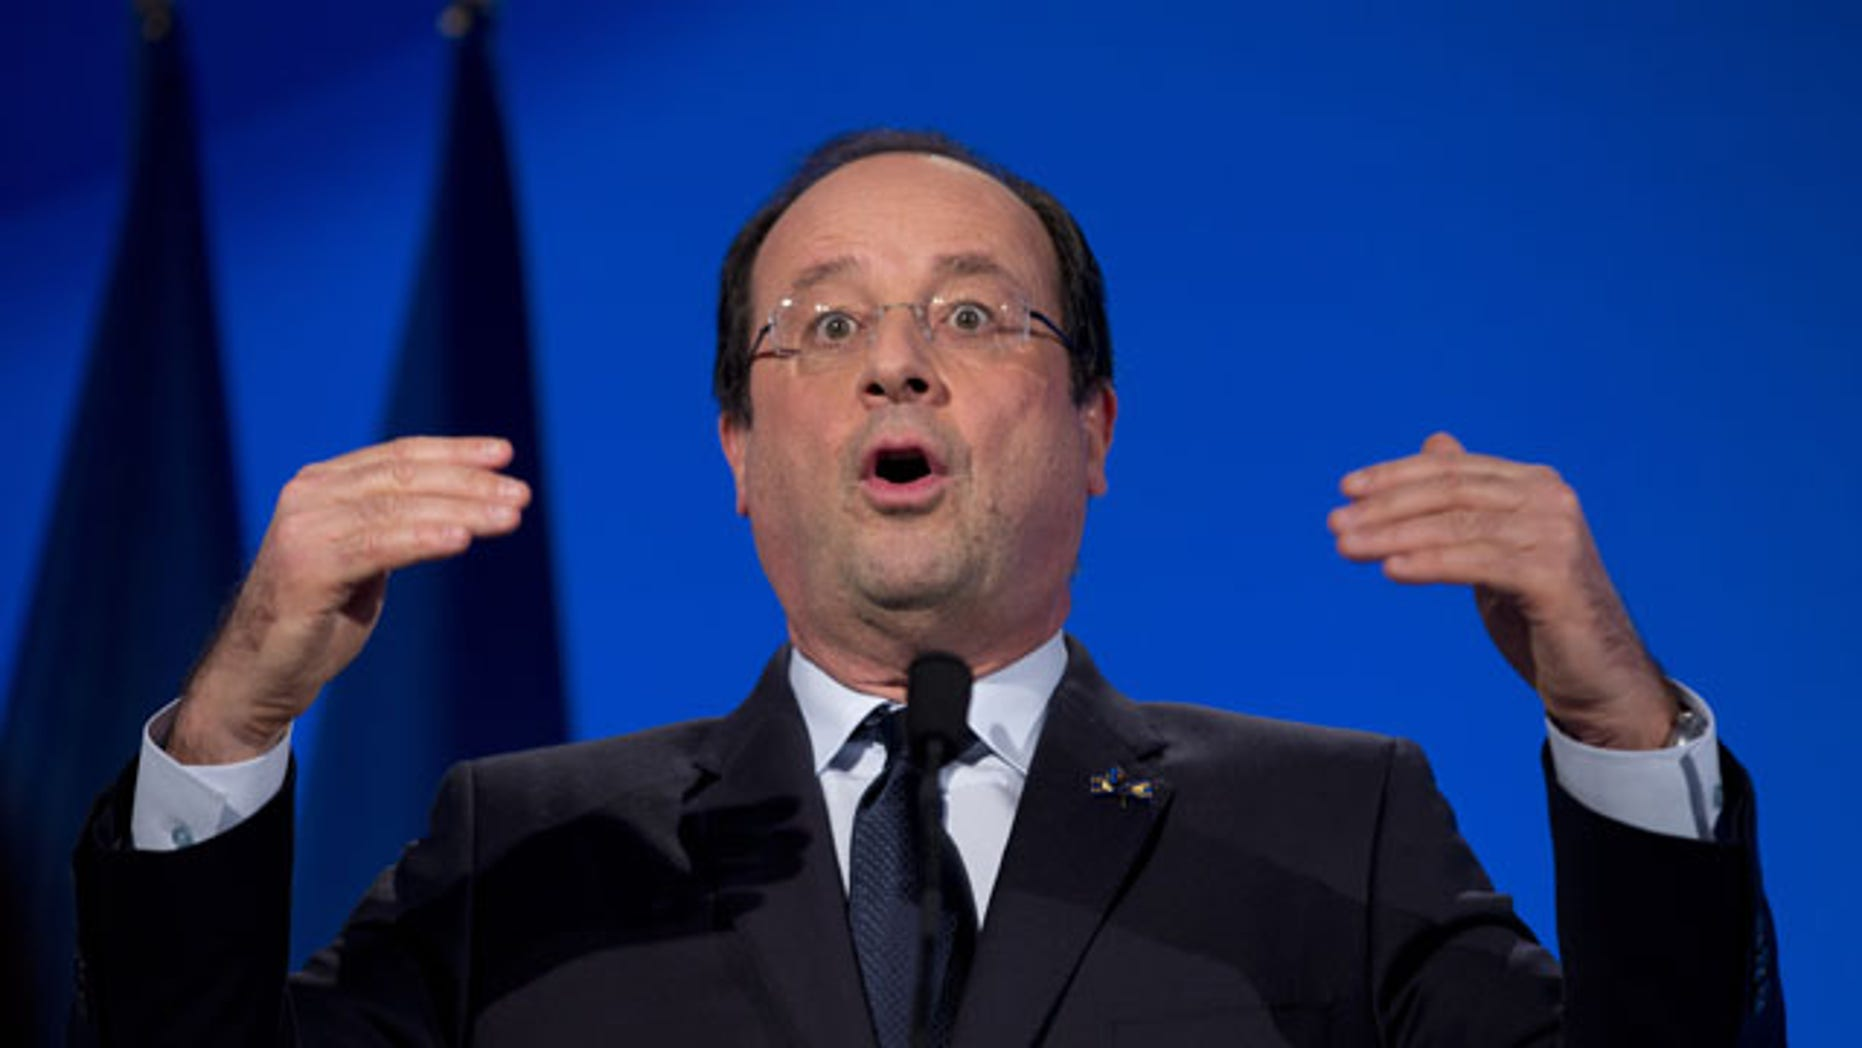 January 20, 2014: French President Francois Hollande raises his hands during a speech at the National Maritime Museum in Amsterdam, Netherlands. (AP Photo/Peter Dejong)